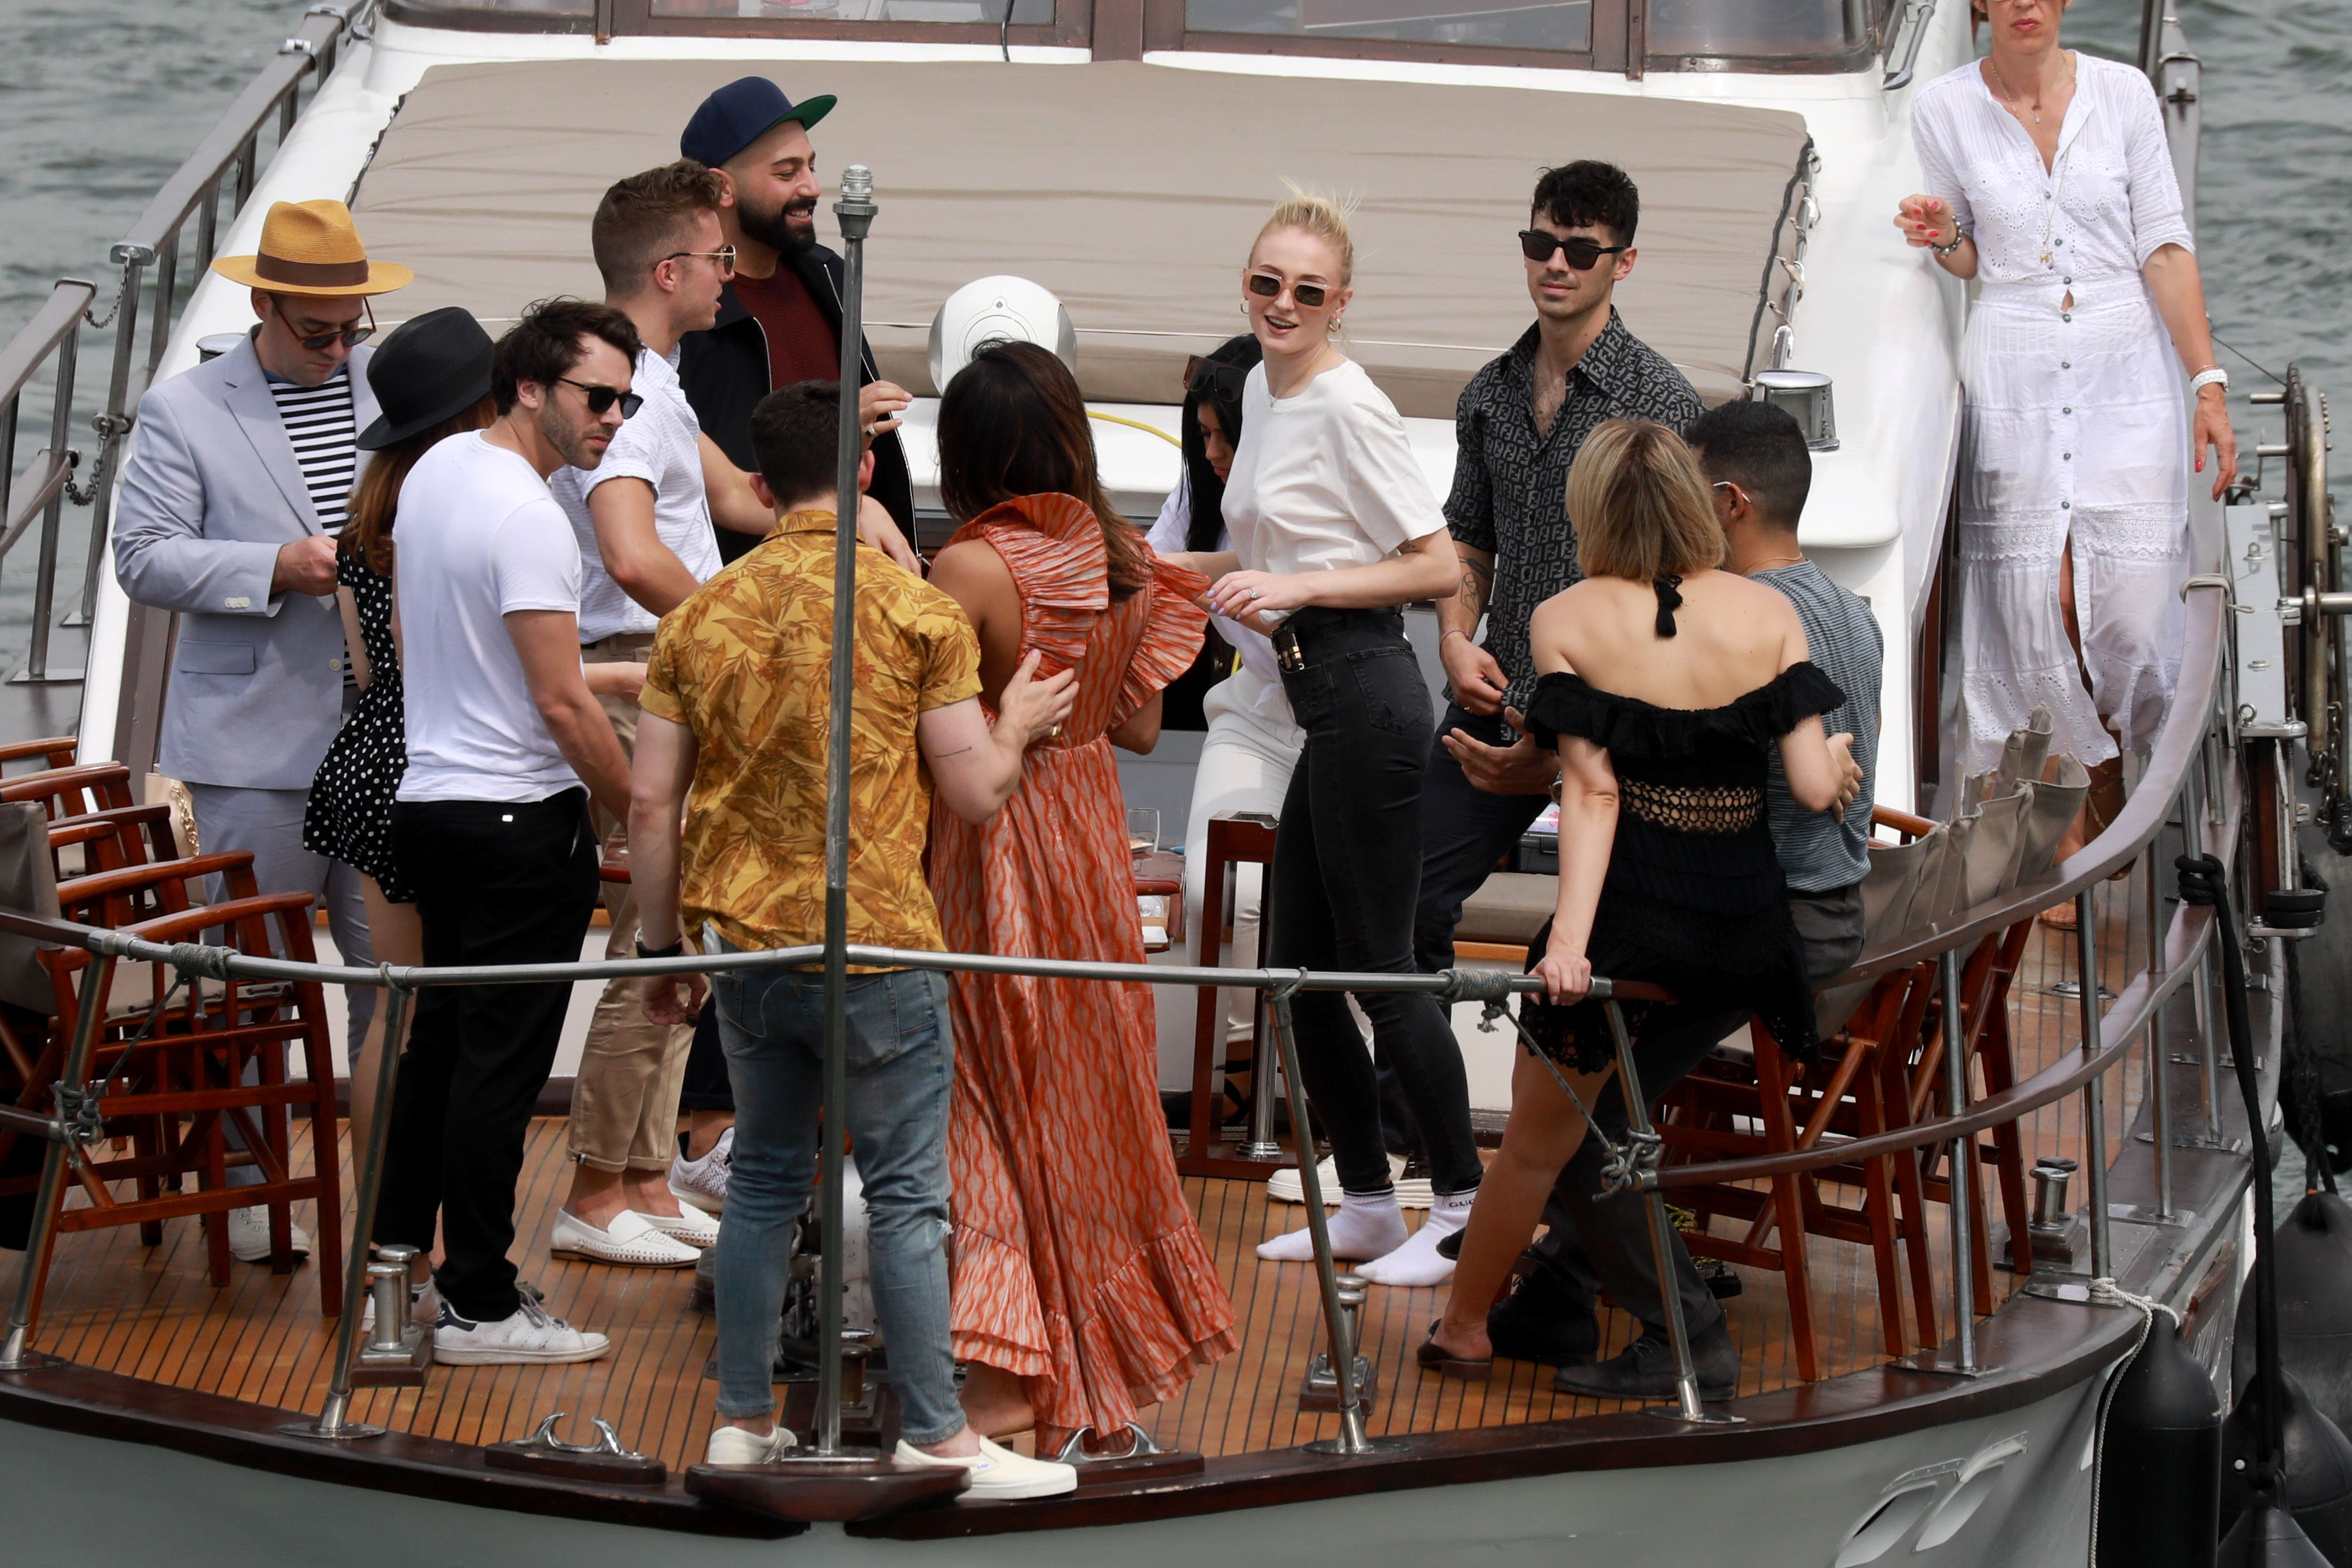 Sophie Turner and Joe Jonas throw a pre-wedding boat party in Paris